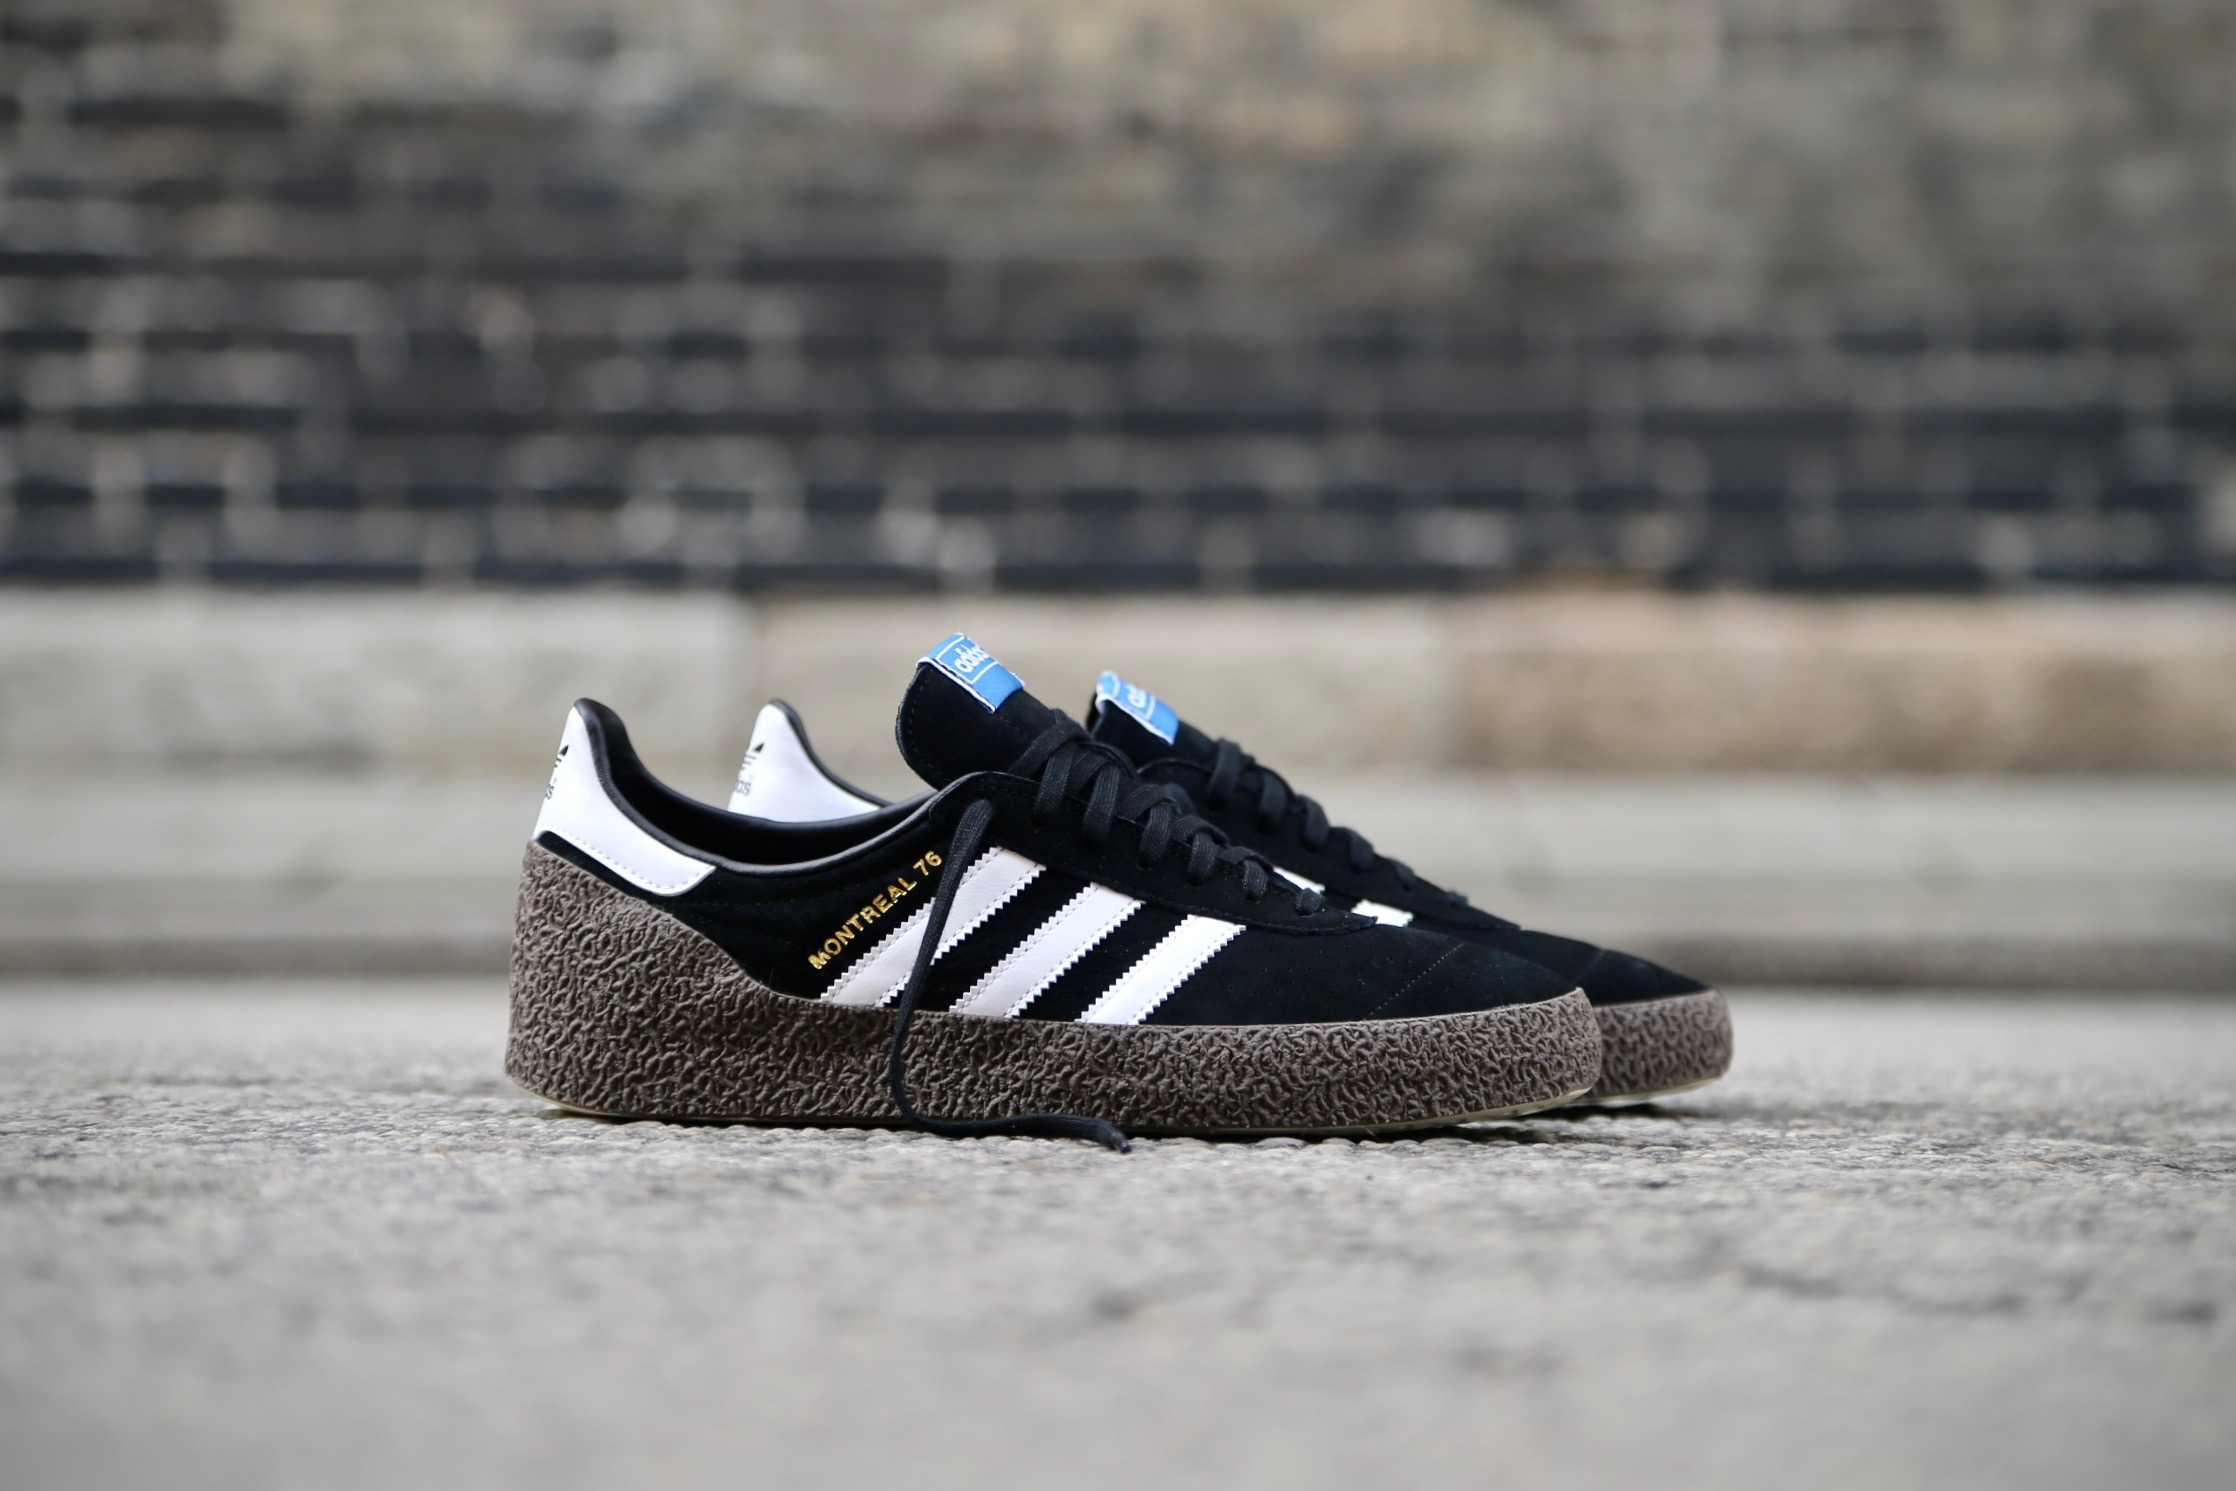 Paciencia Senador viuda  adidas Originals Montreal 76 – Core Black / Ftwr White / Gold Metallic –  STASP